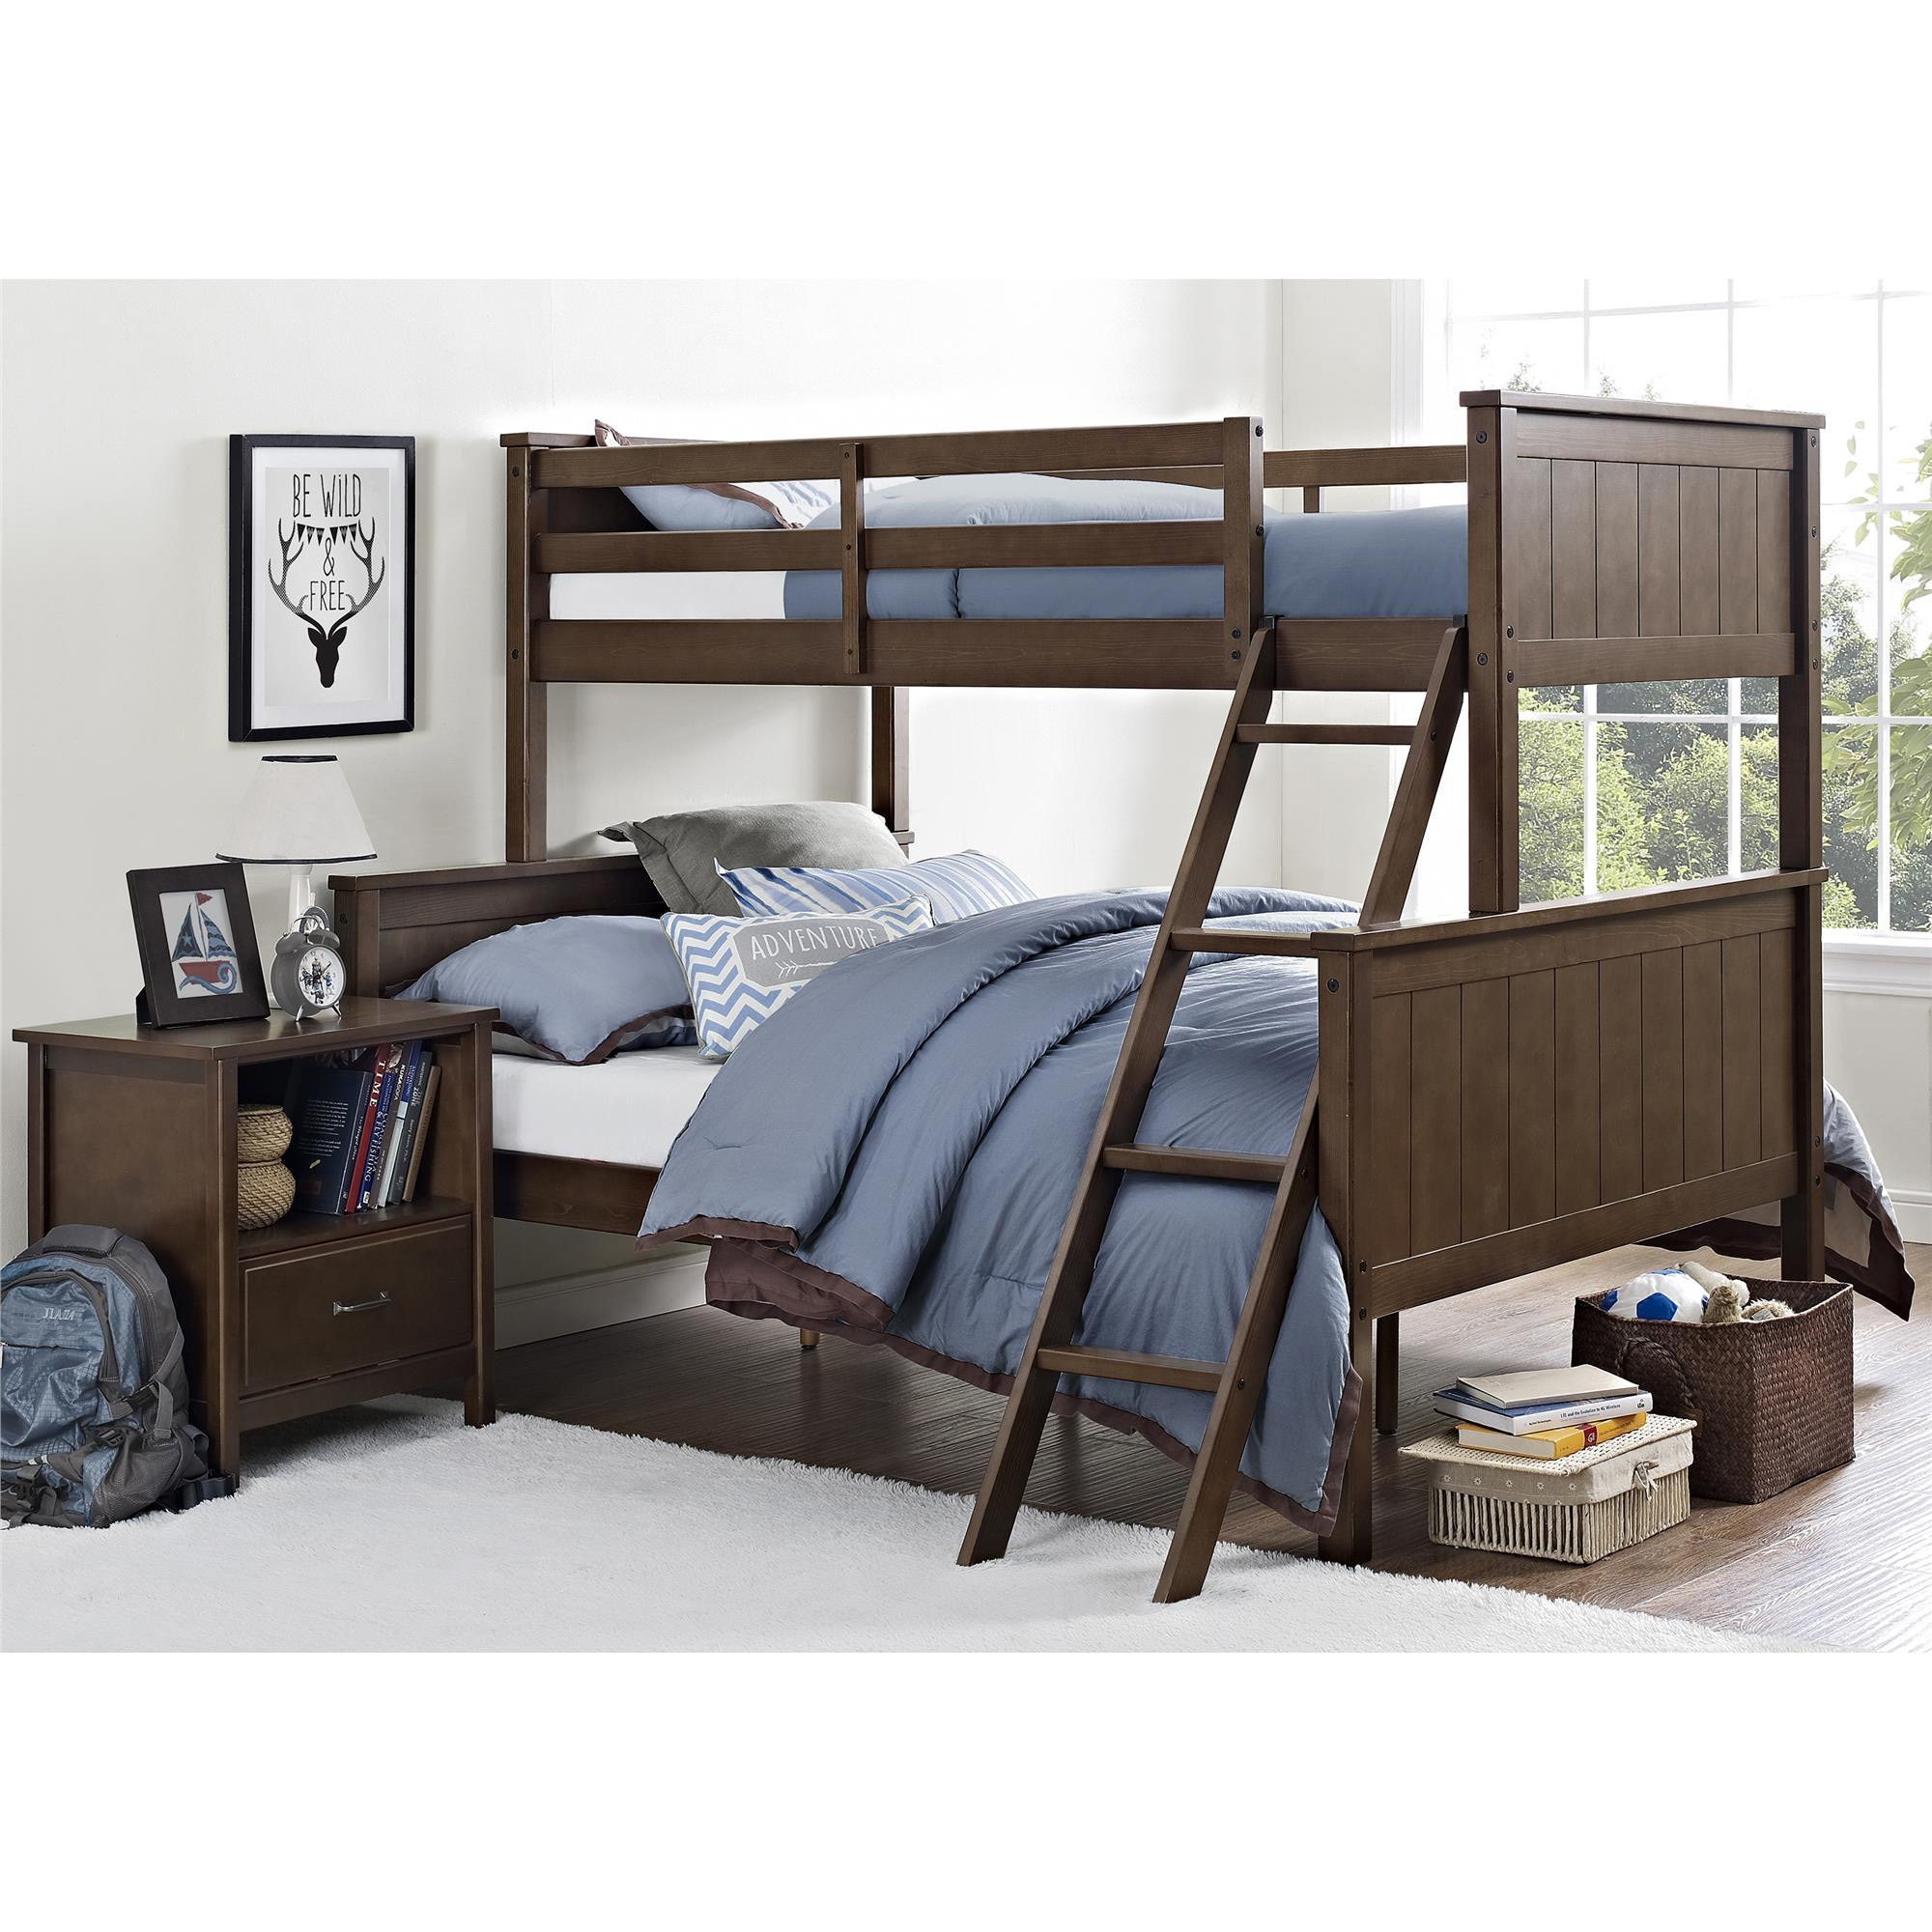 Better Homes and Gardens Ashcreek Twin/Full Bunk Bed